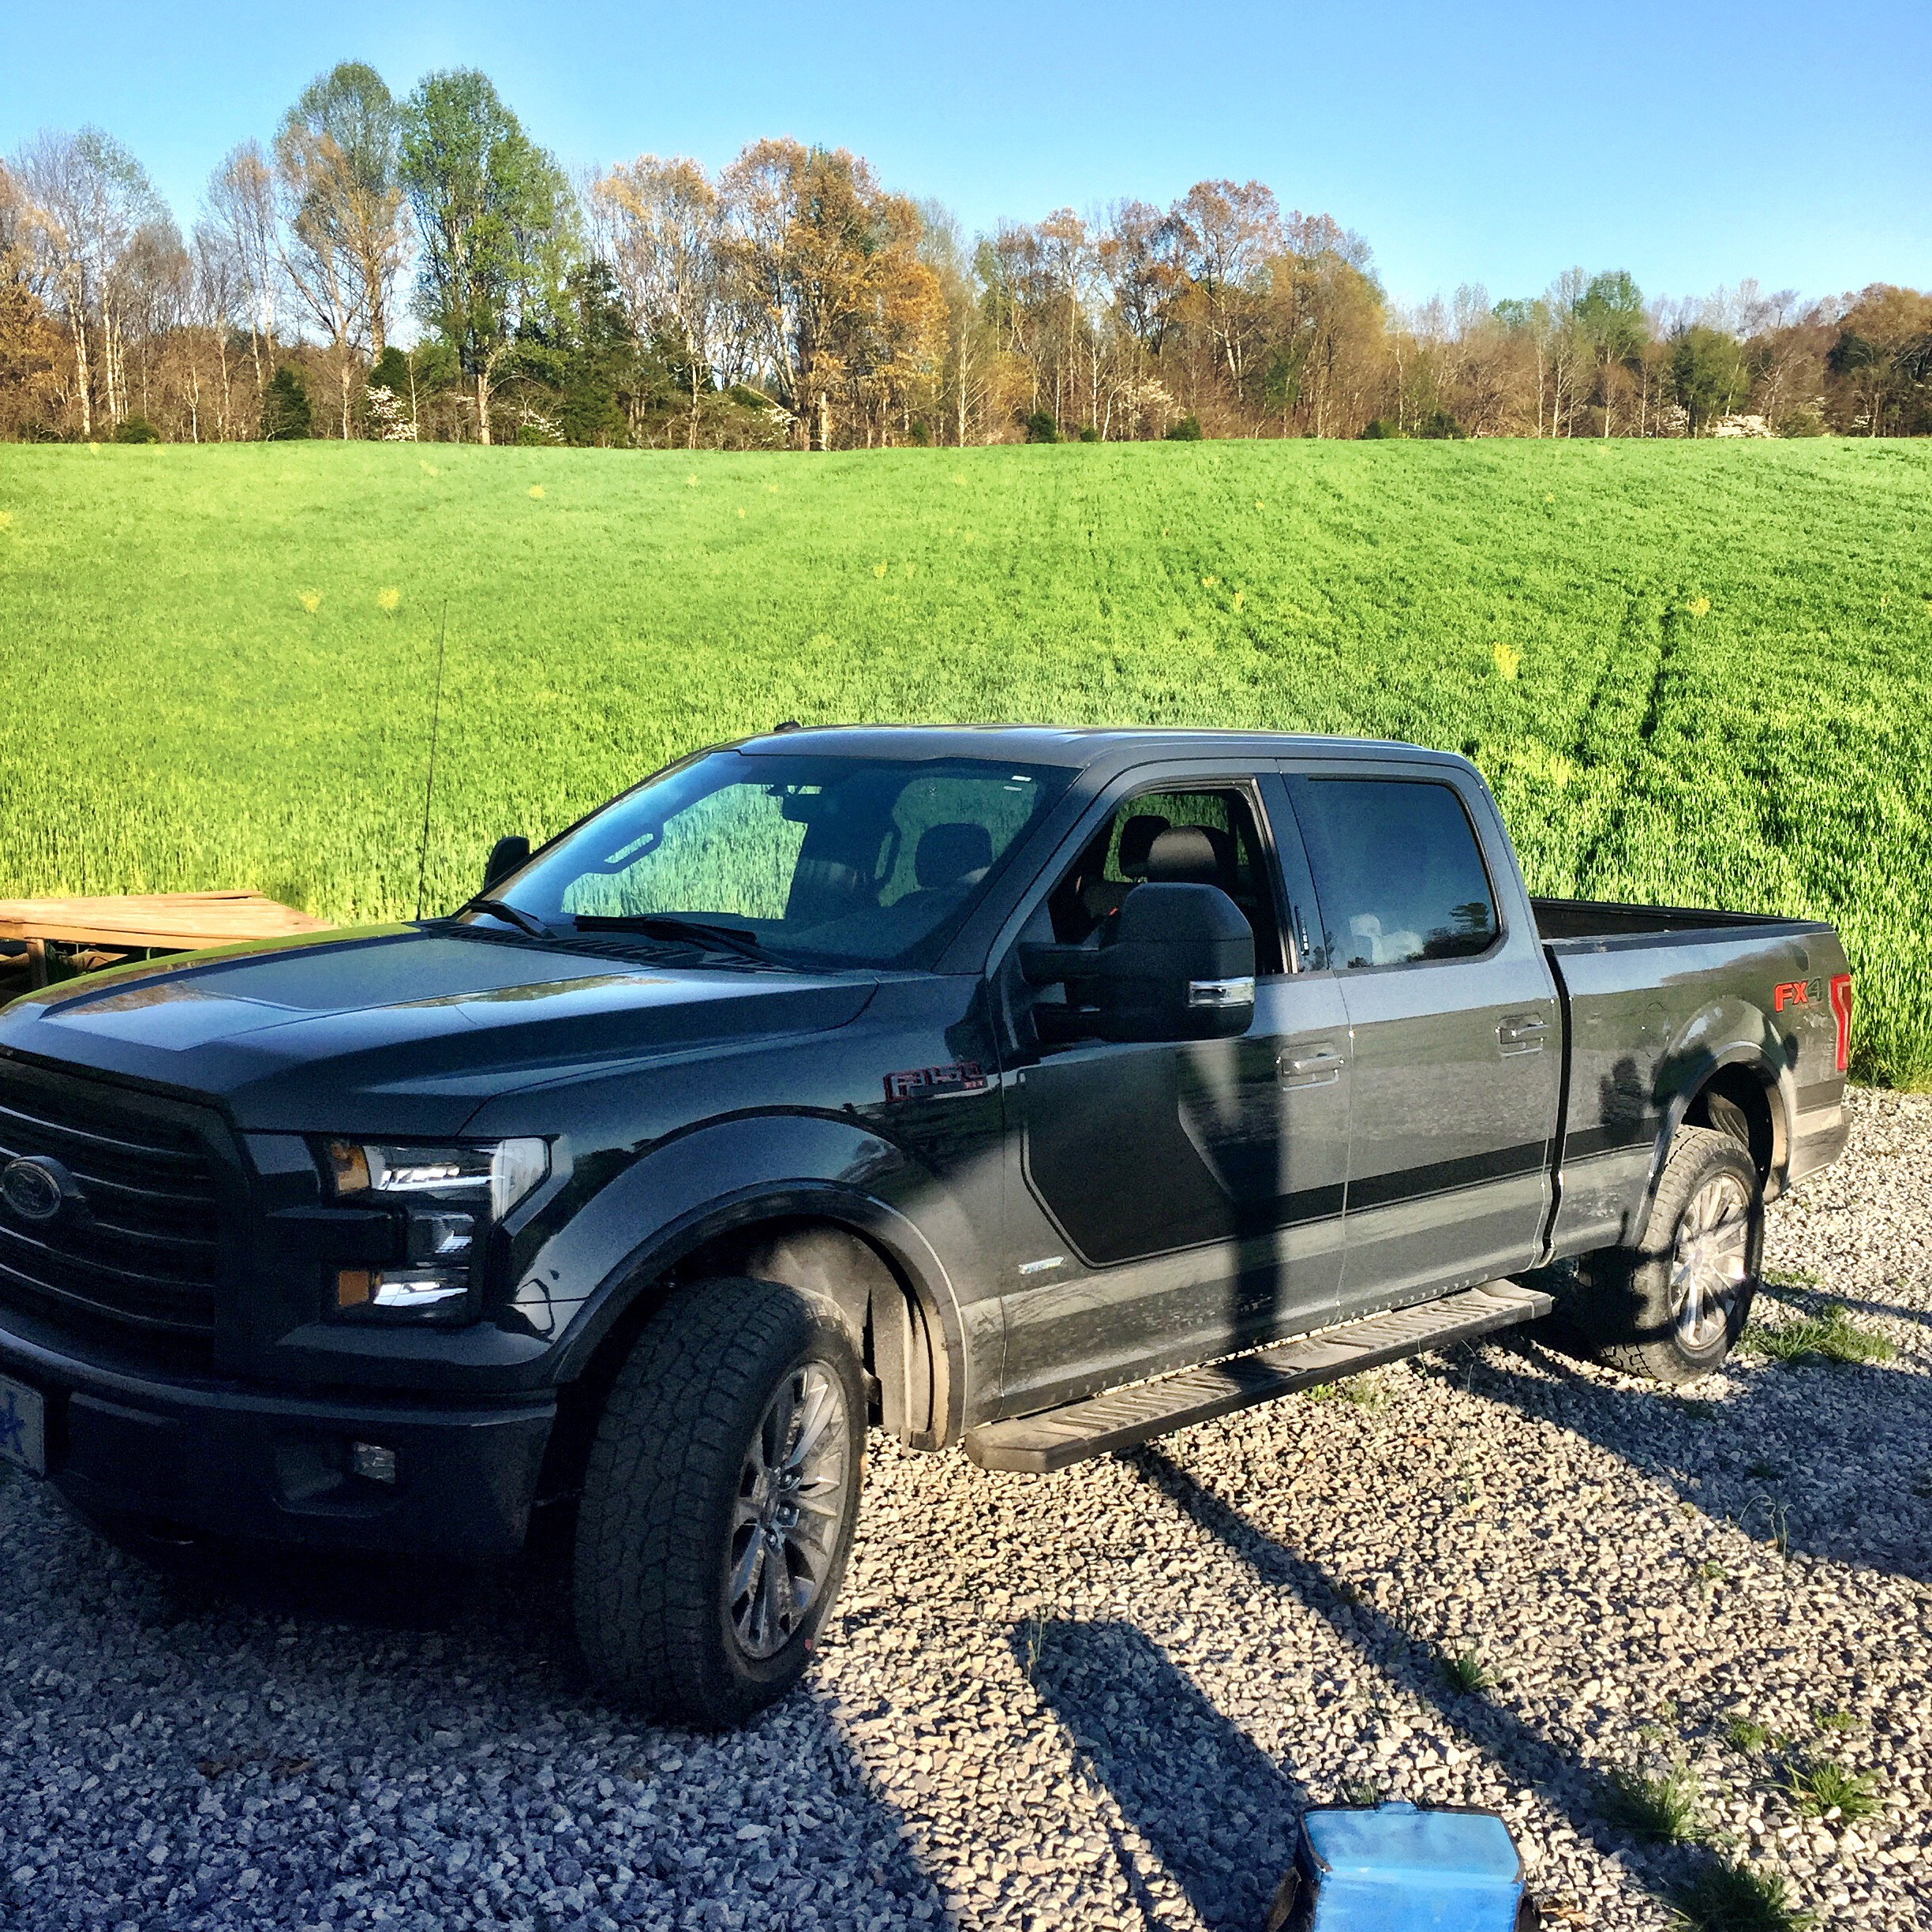 New to the forum 2016 XLT Special Edition